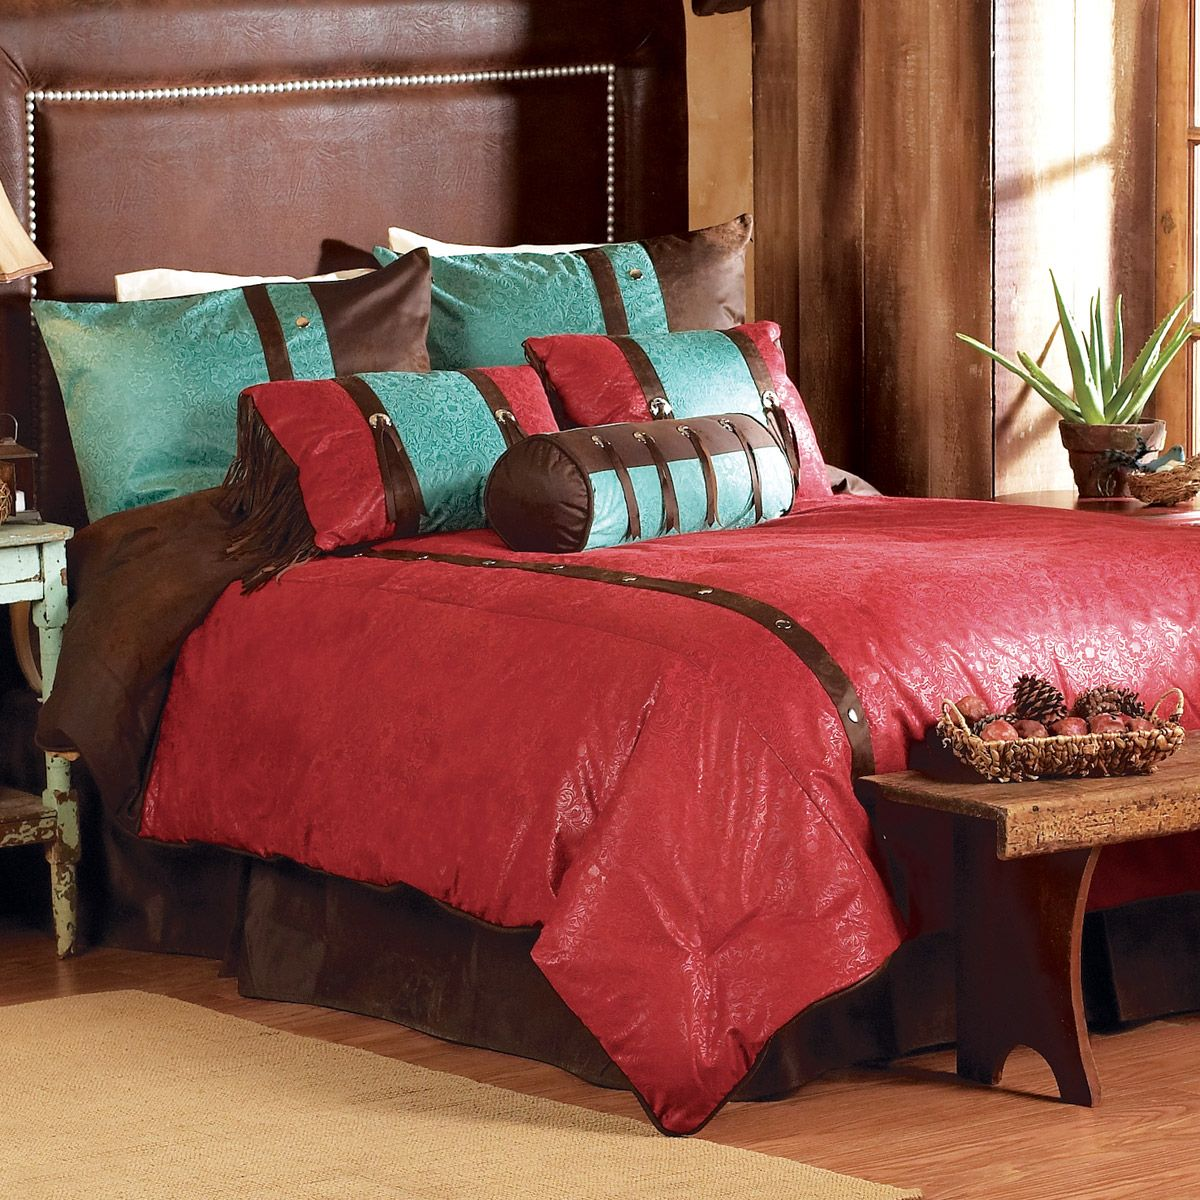 Cheyenne Red Bed Set - Super King